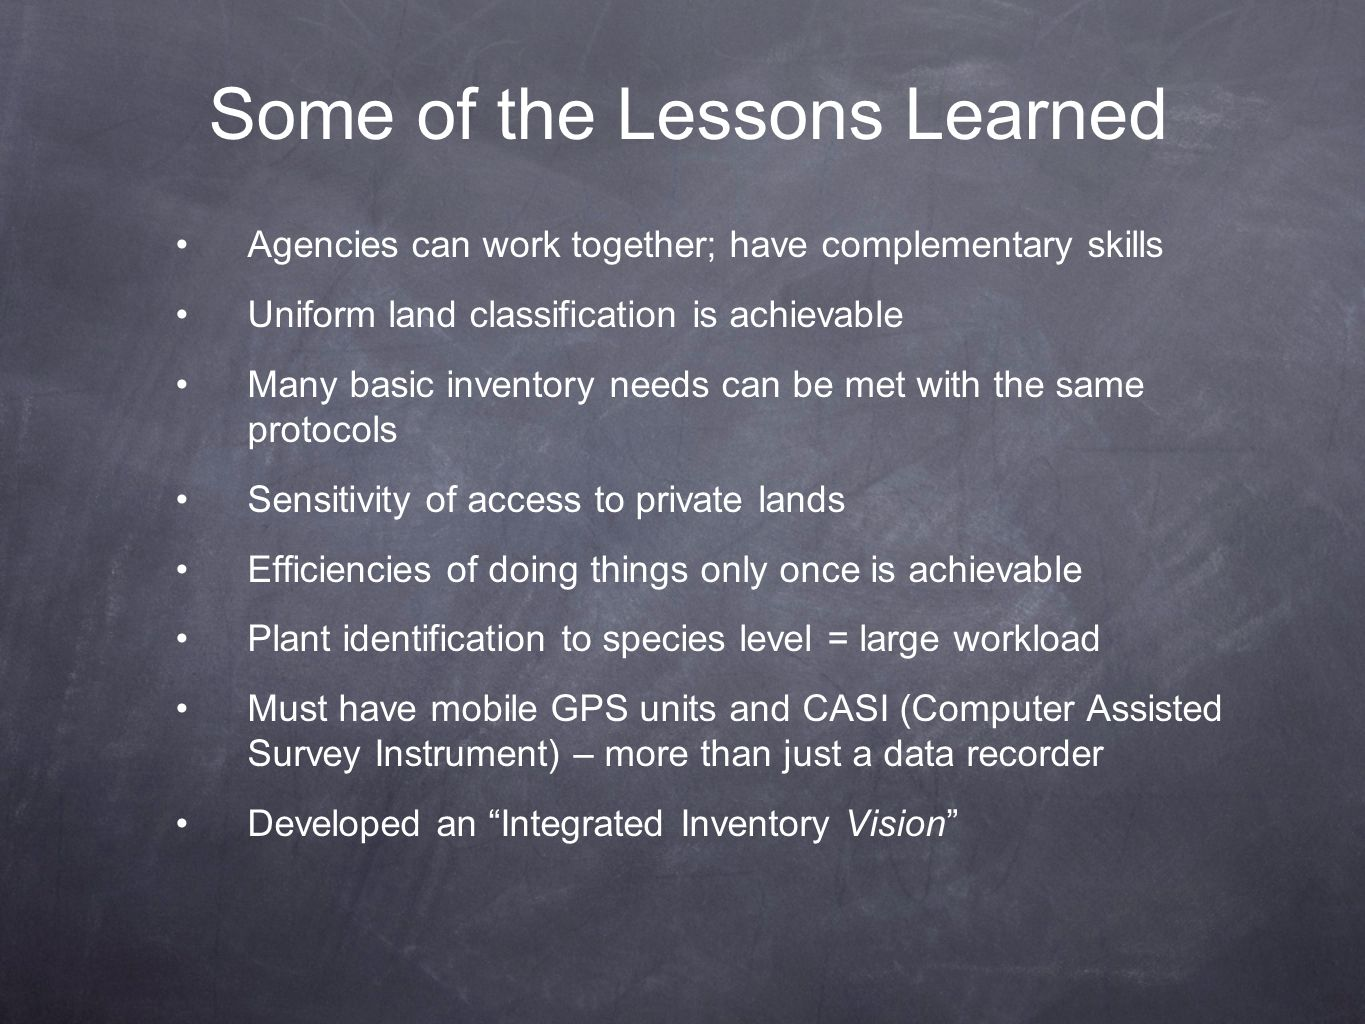 Some of the Lessons Learned